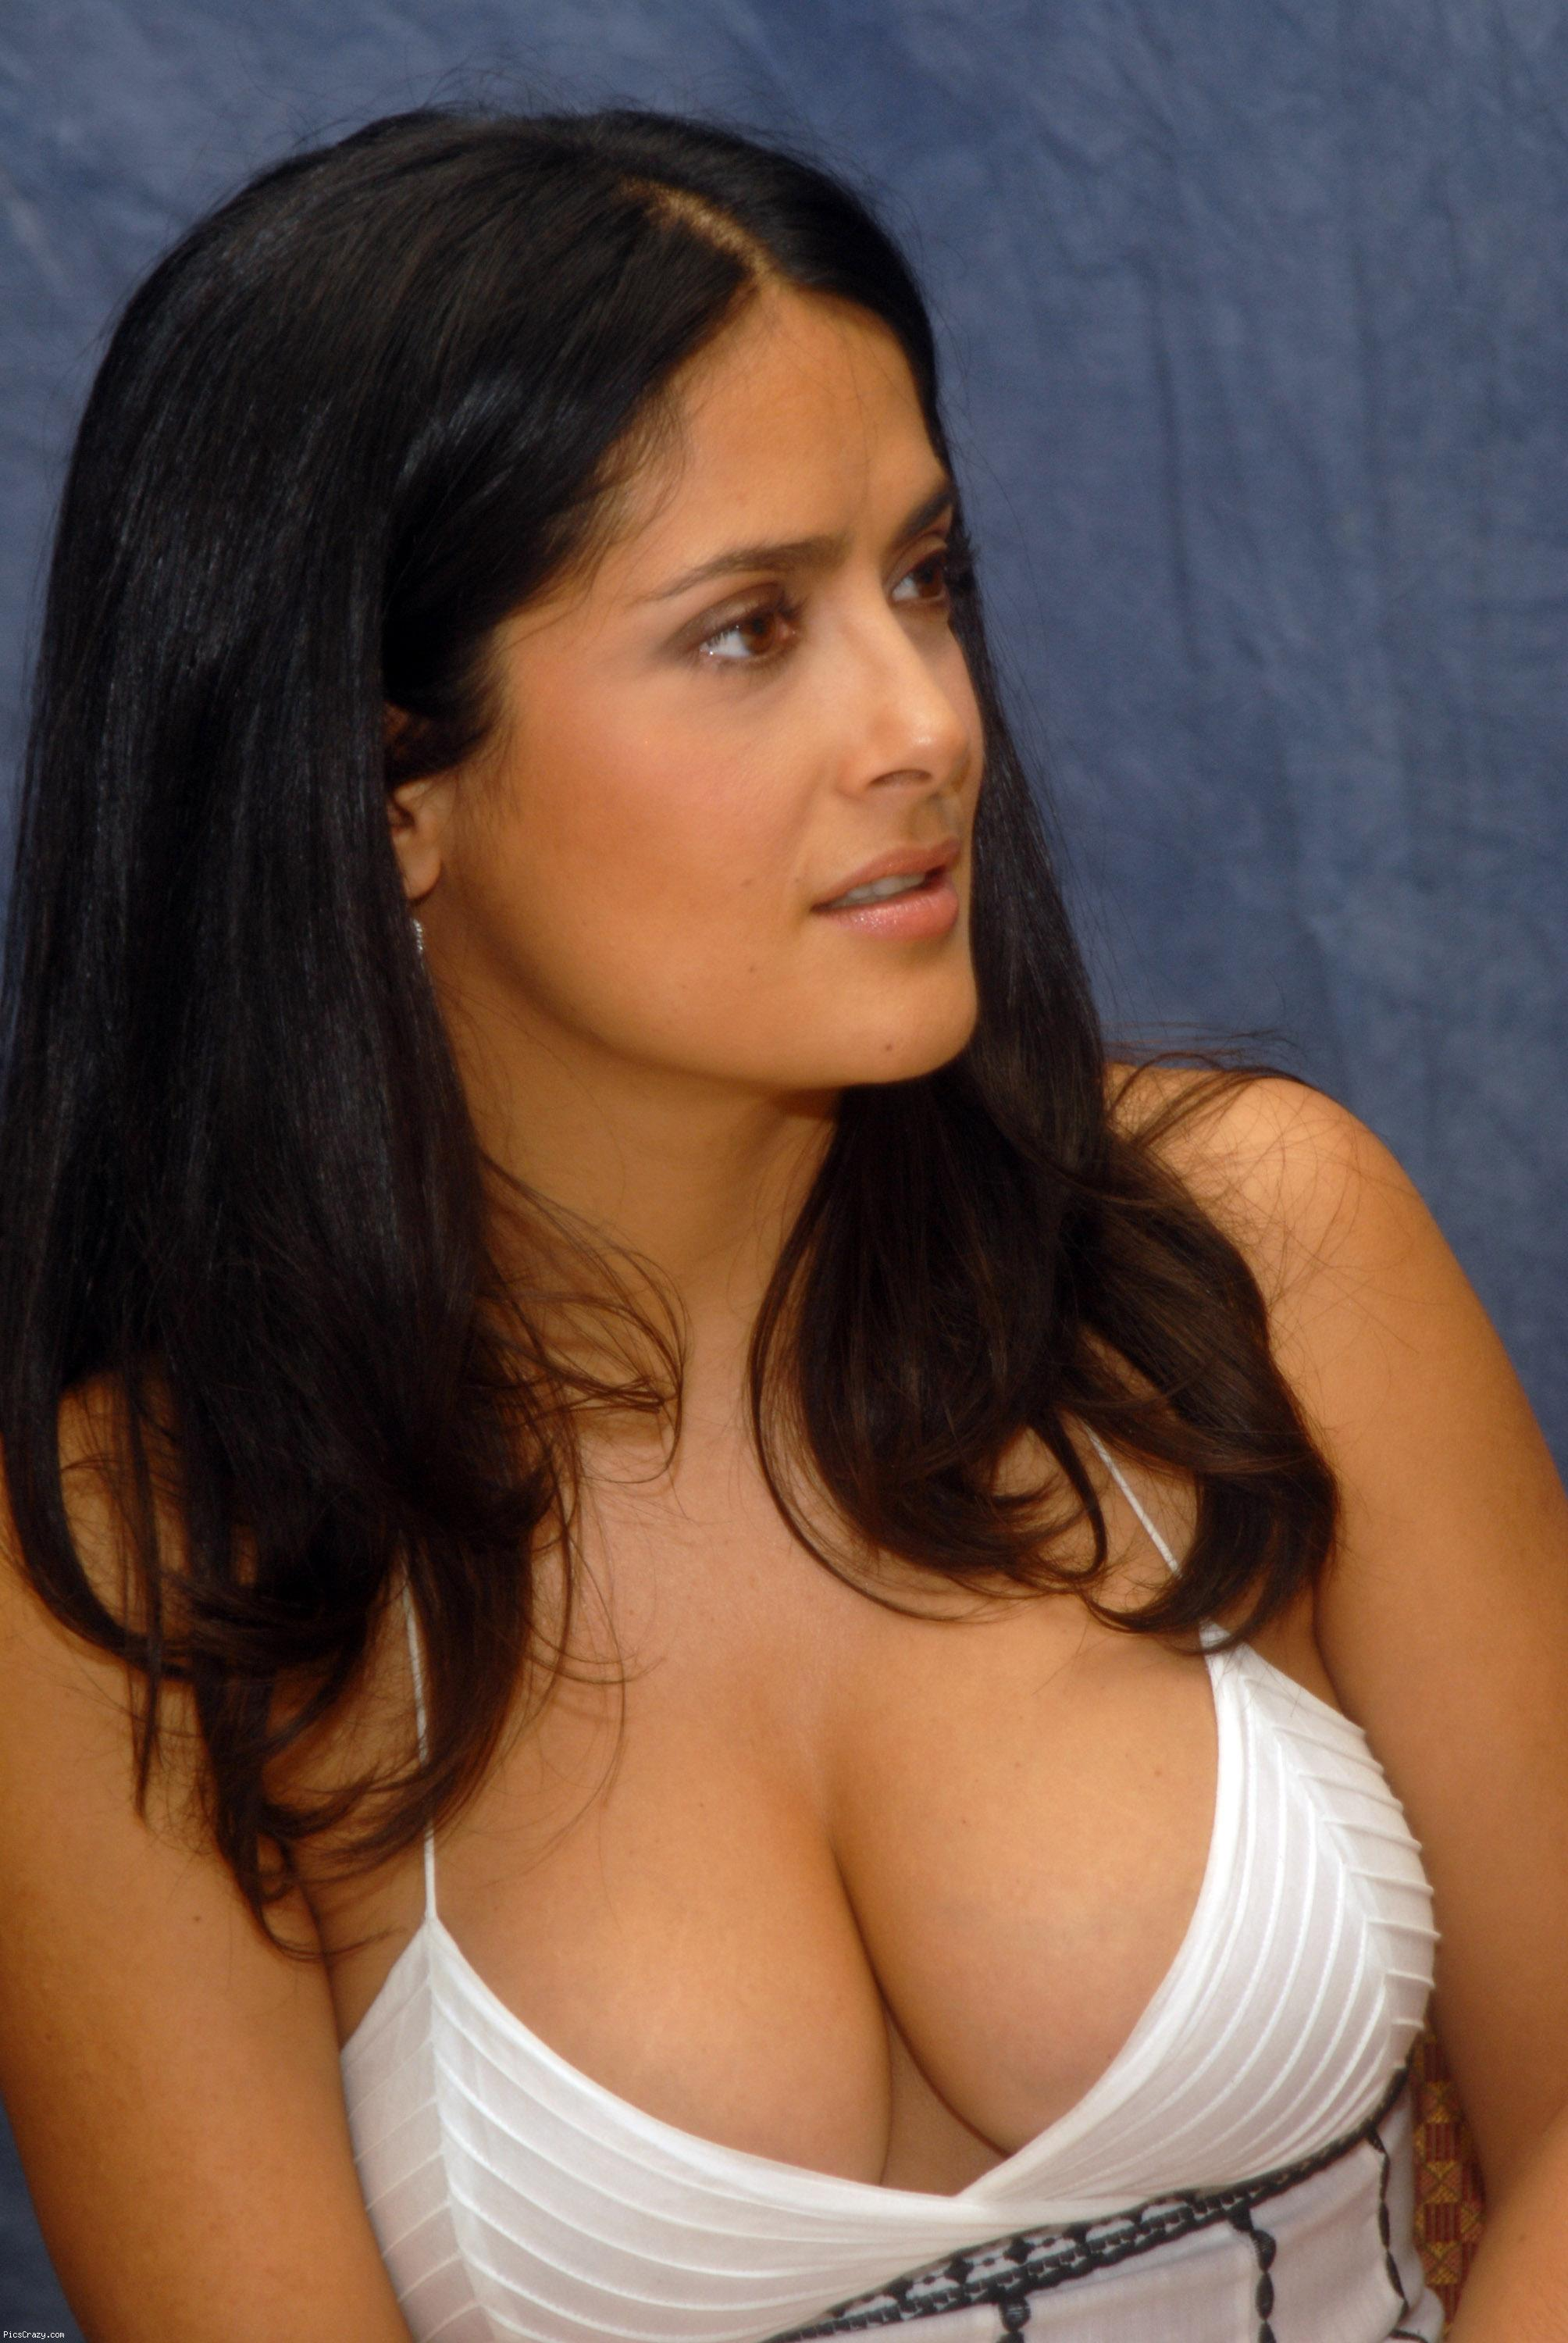 The cleavage thread! Salma-hayek-cleavage